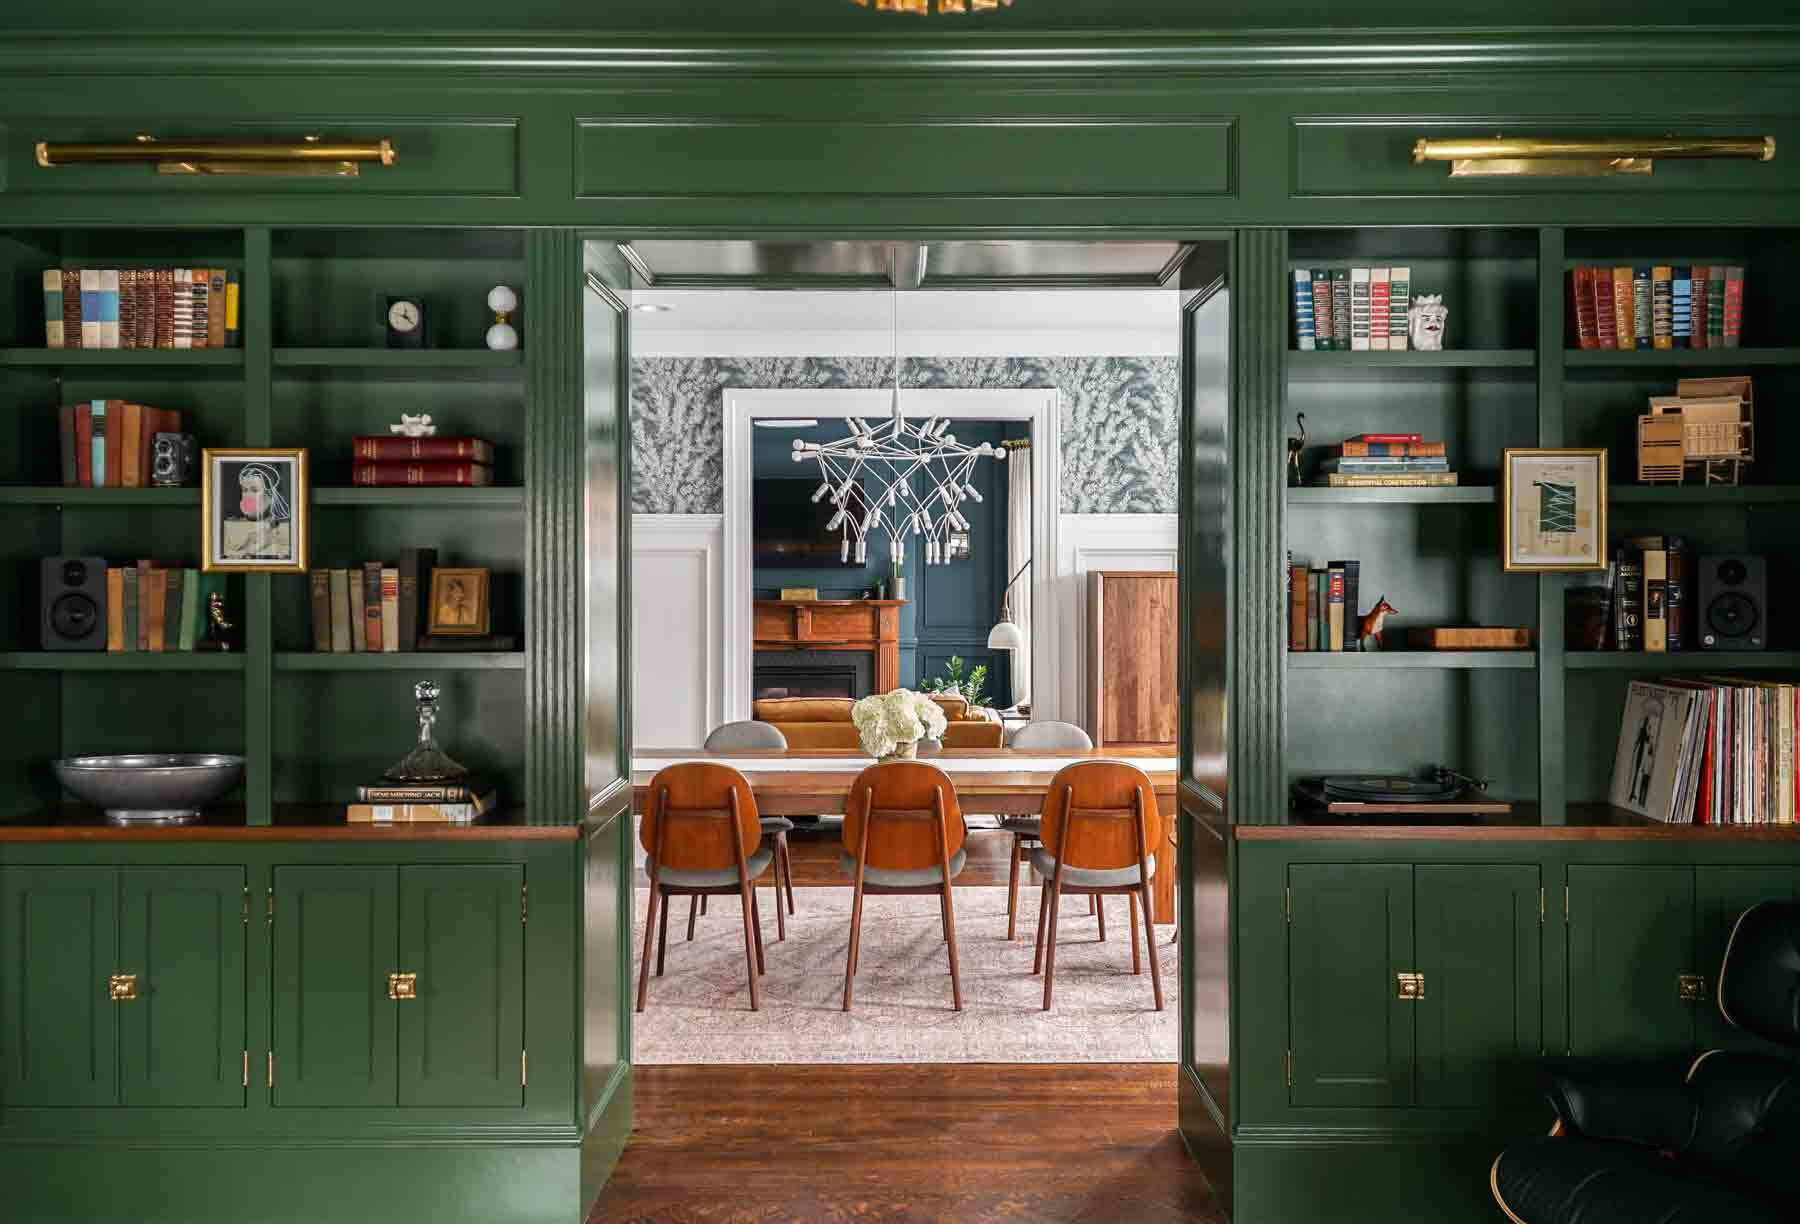 A bold green splashes across the walls of the Victorian parlor